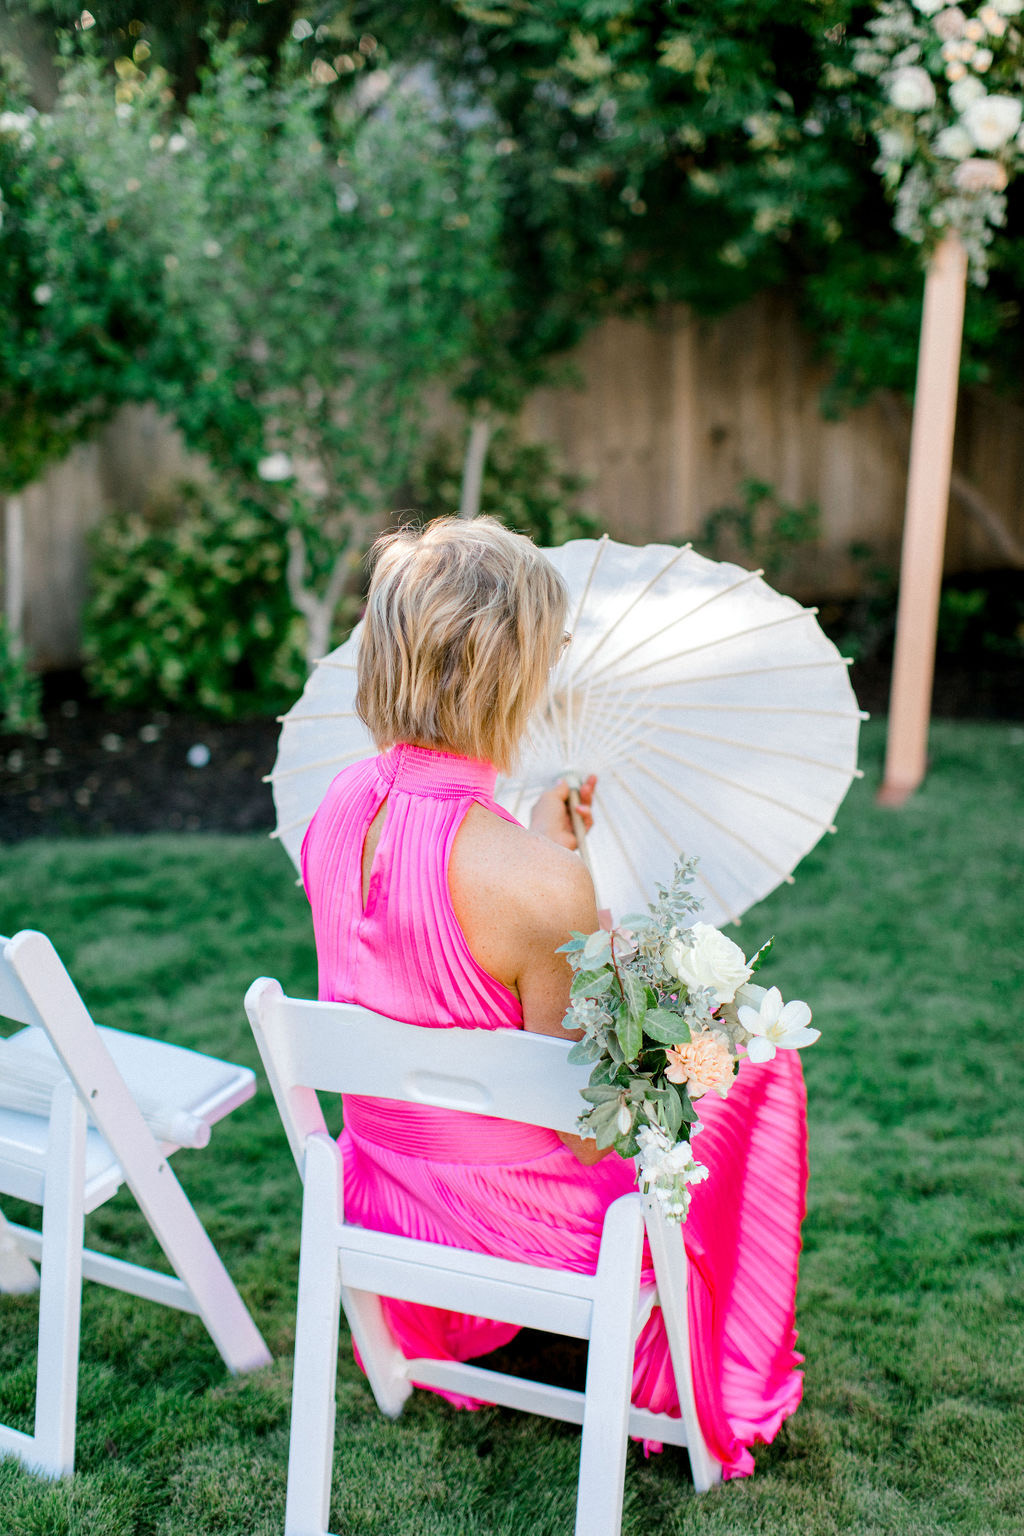 guess in bright pink dress holding white parasol